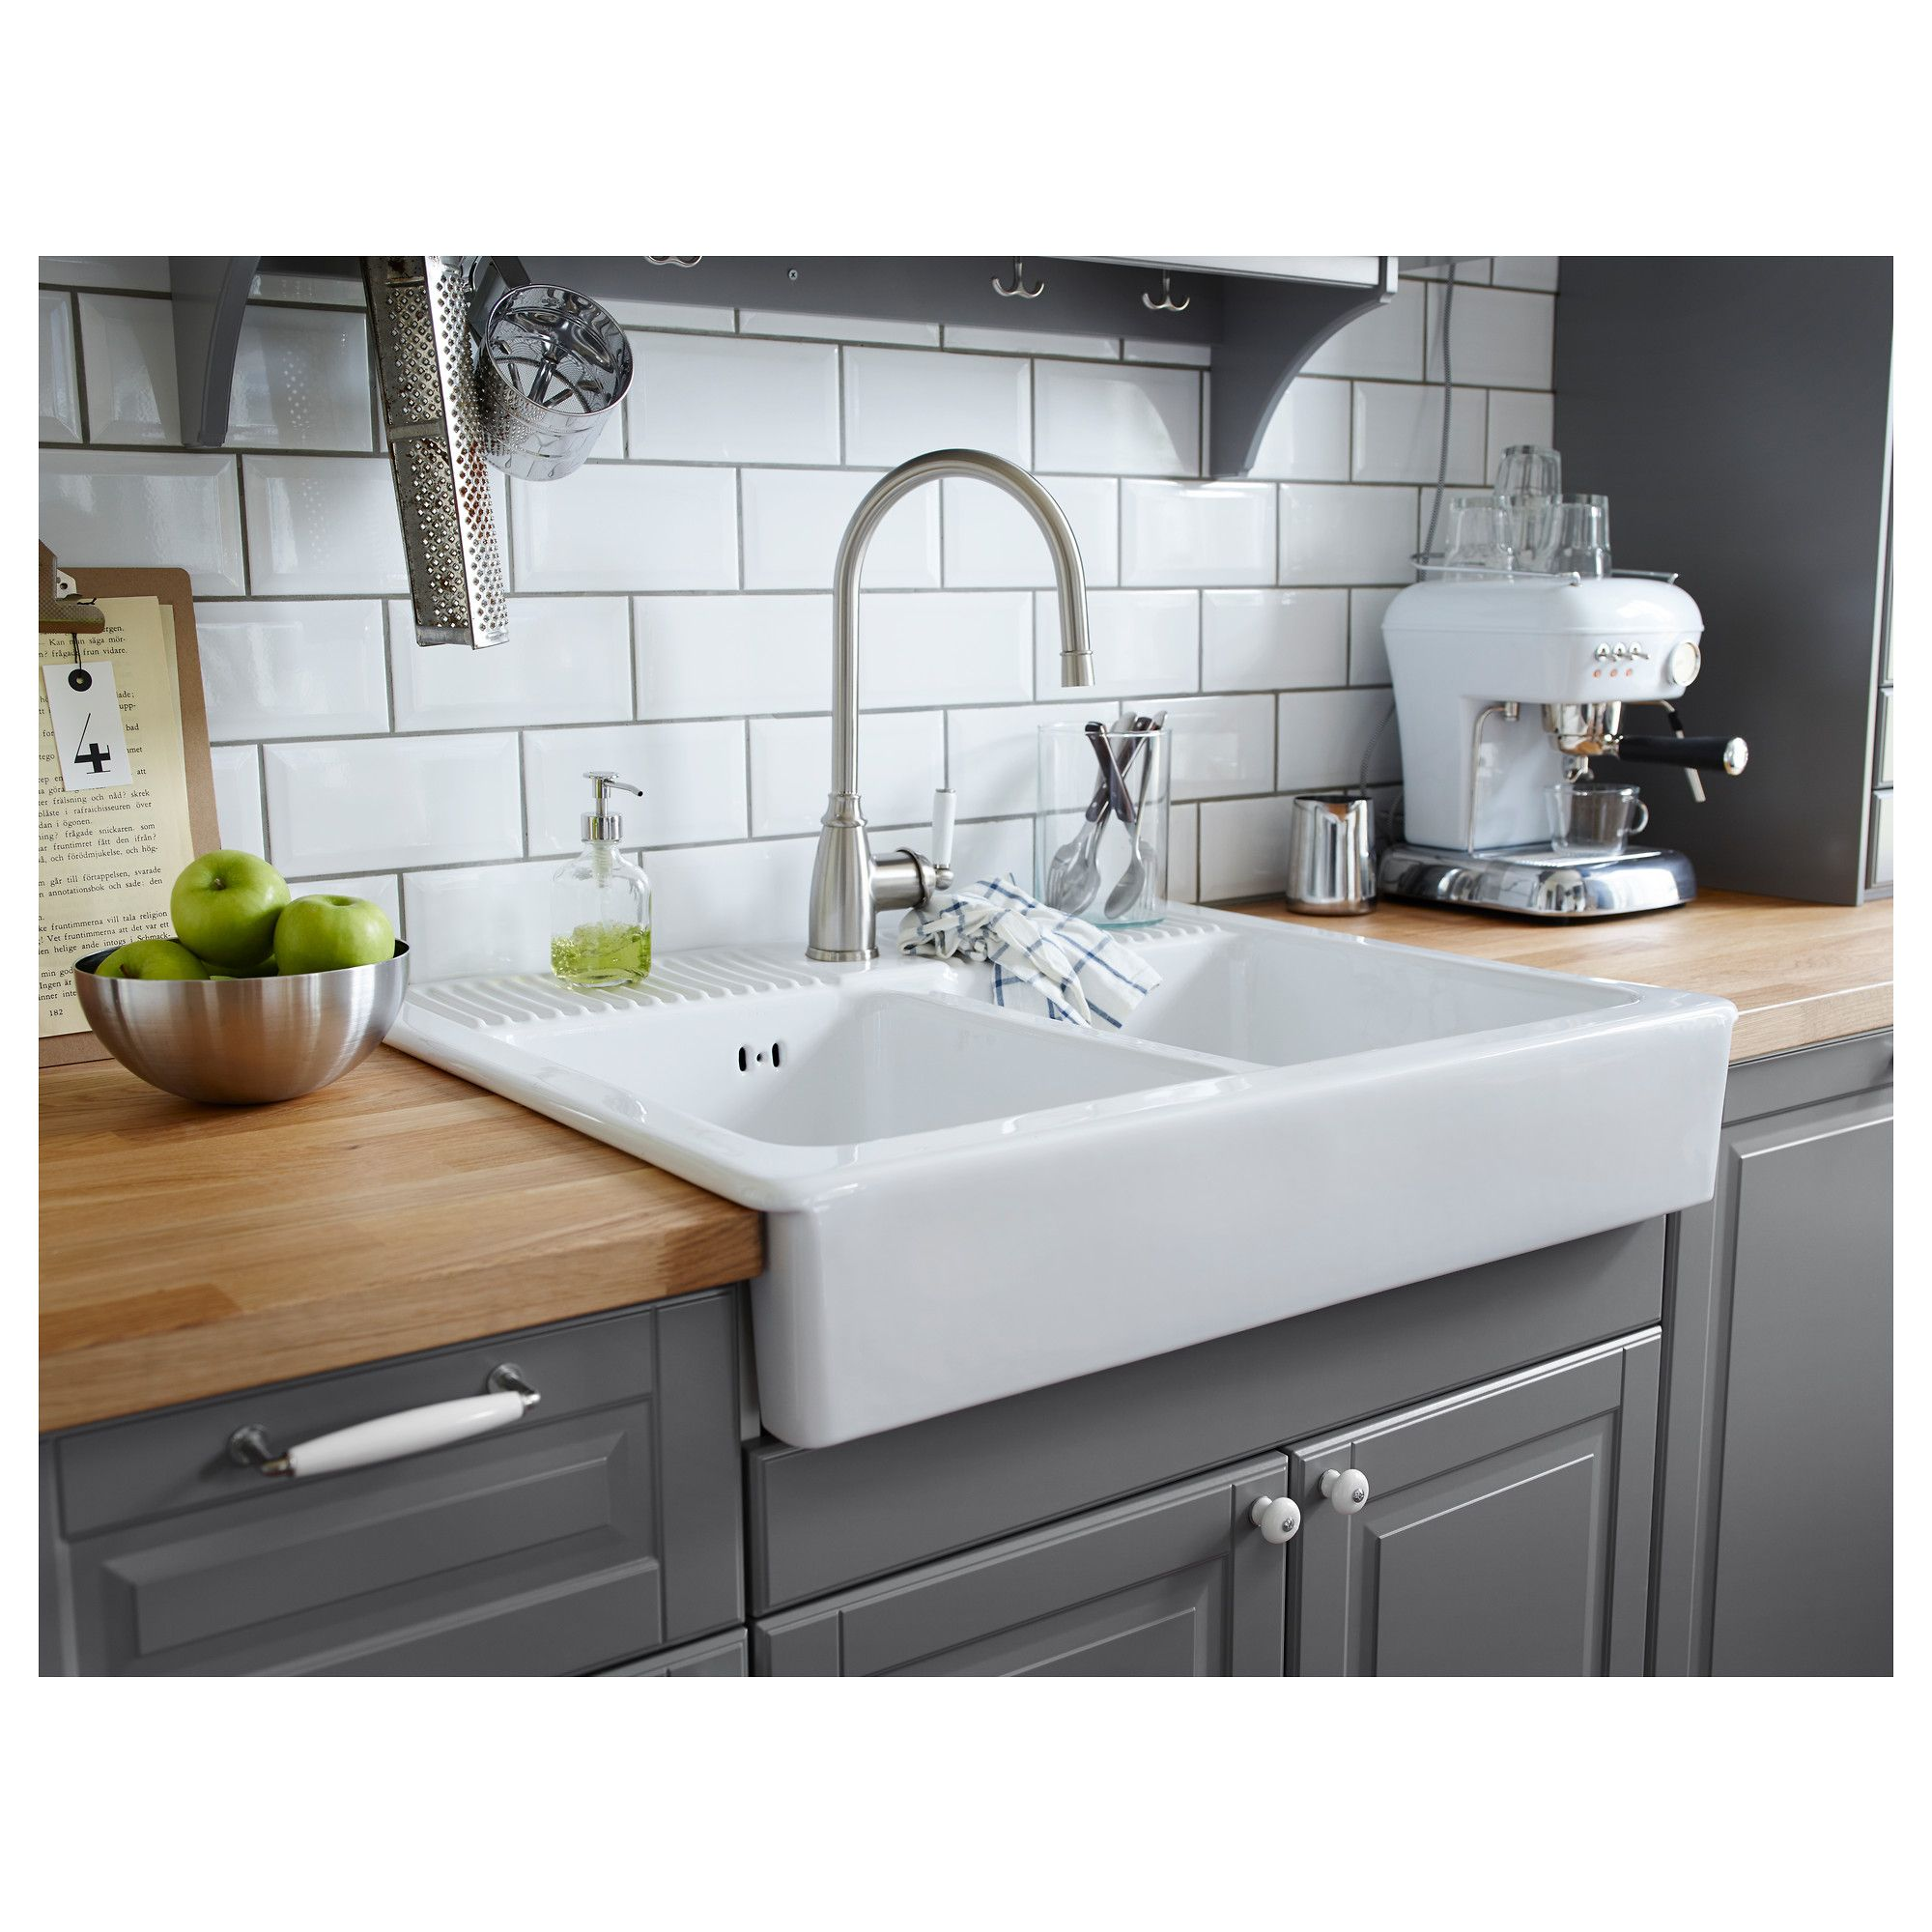 évier Ikea Cuisine Ikea Elverdam Kitchen Faucet Stainless Steel Color Products